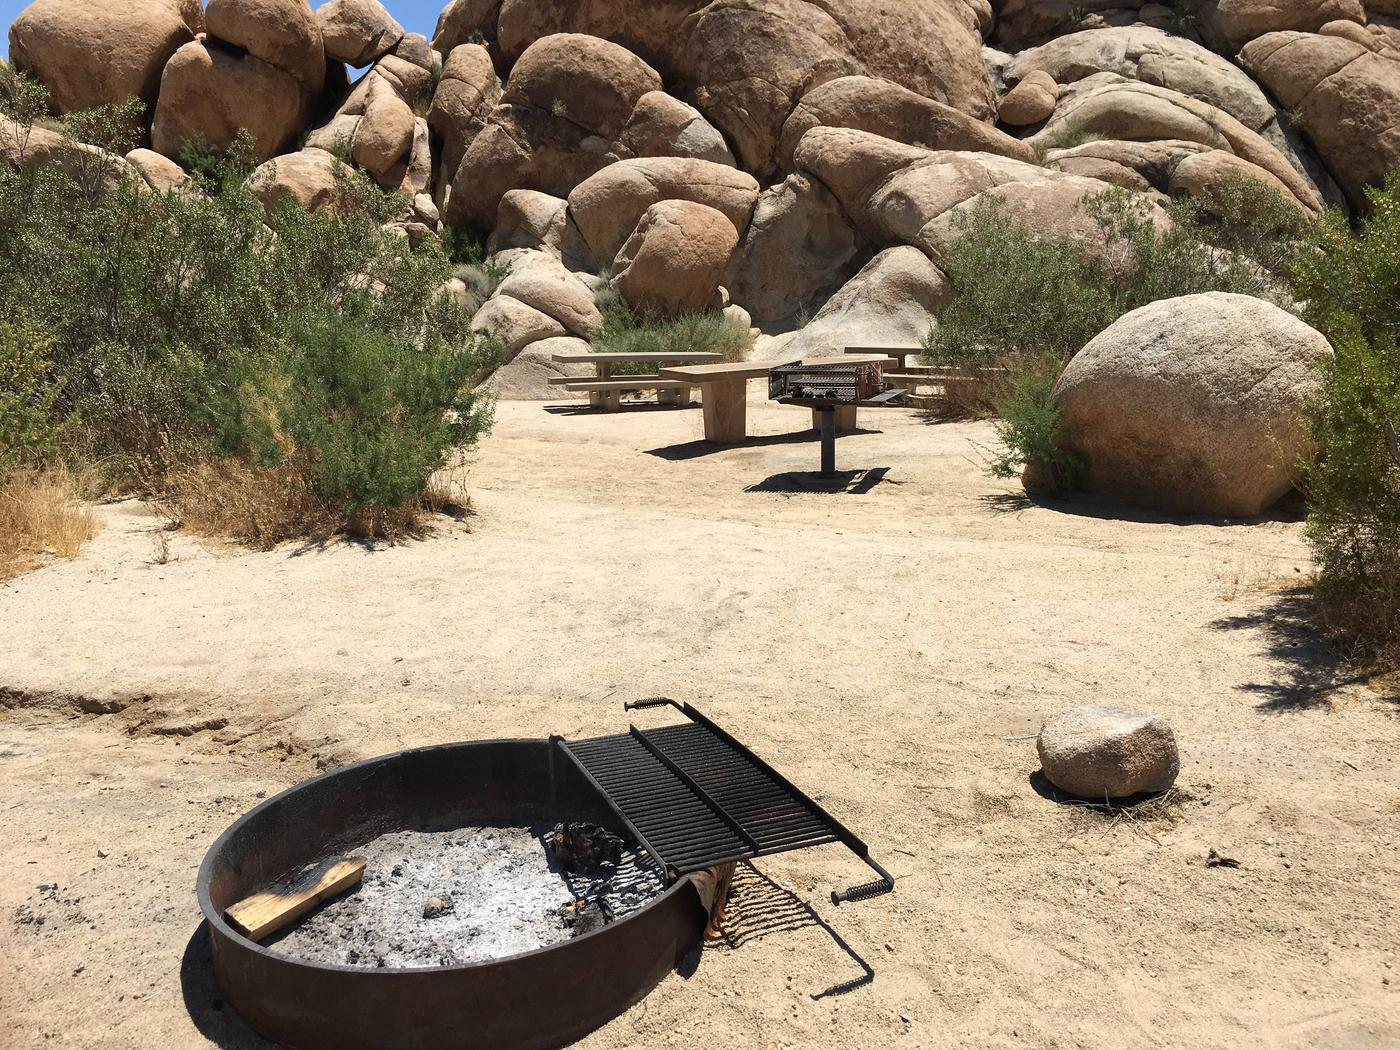 Indian Cove Group Site 6 AmenitiesAmenities: BBQ Grill, Tables and In-Ground Fire Pit